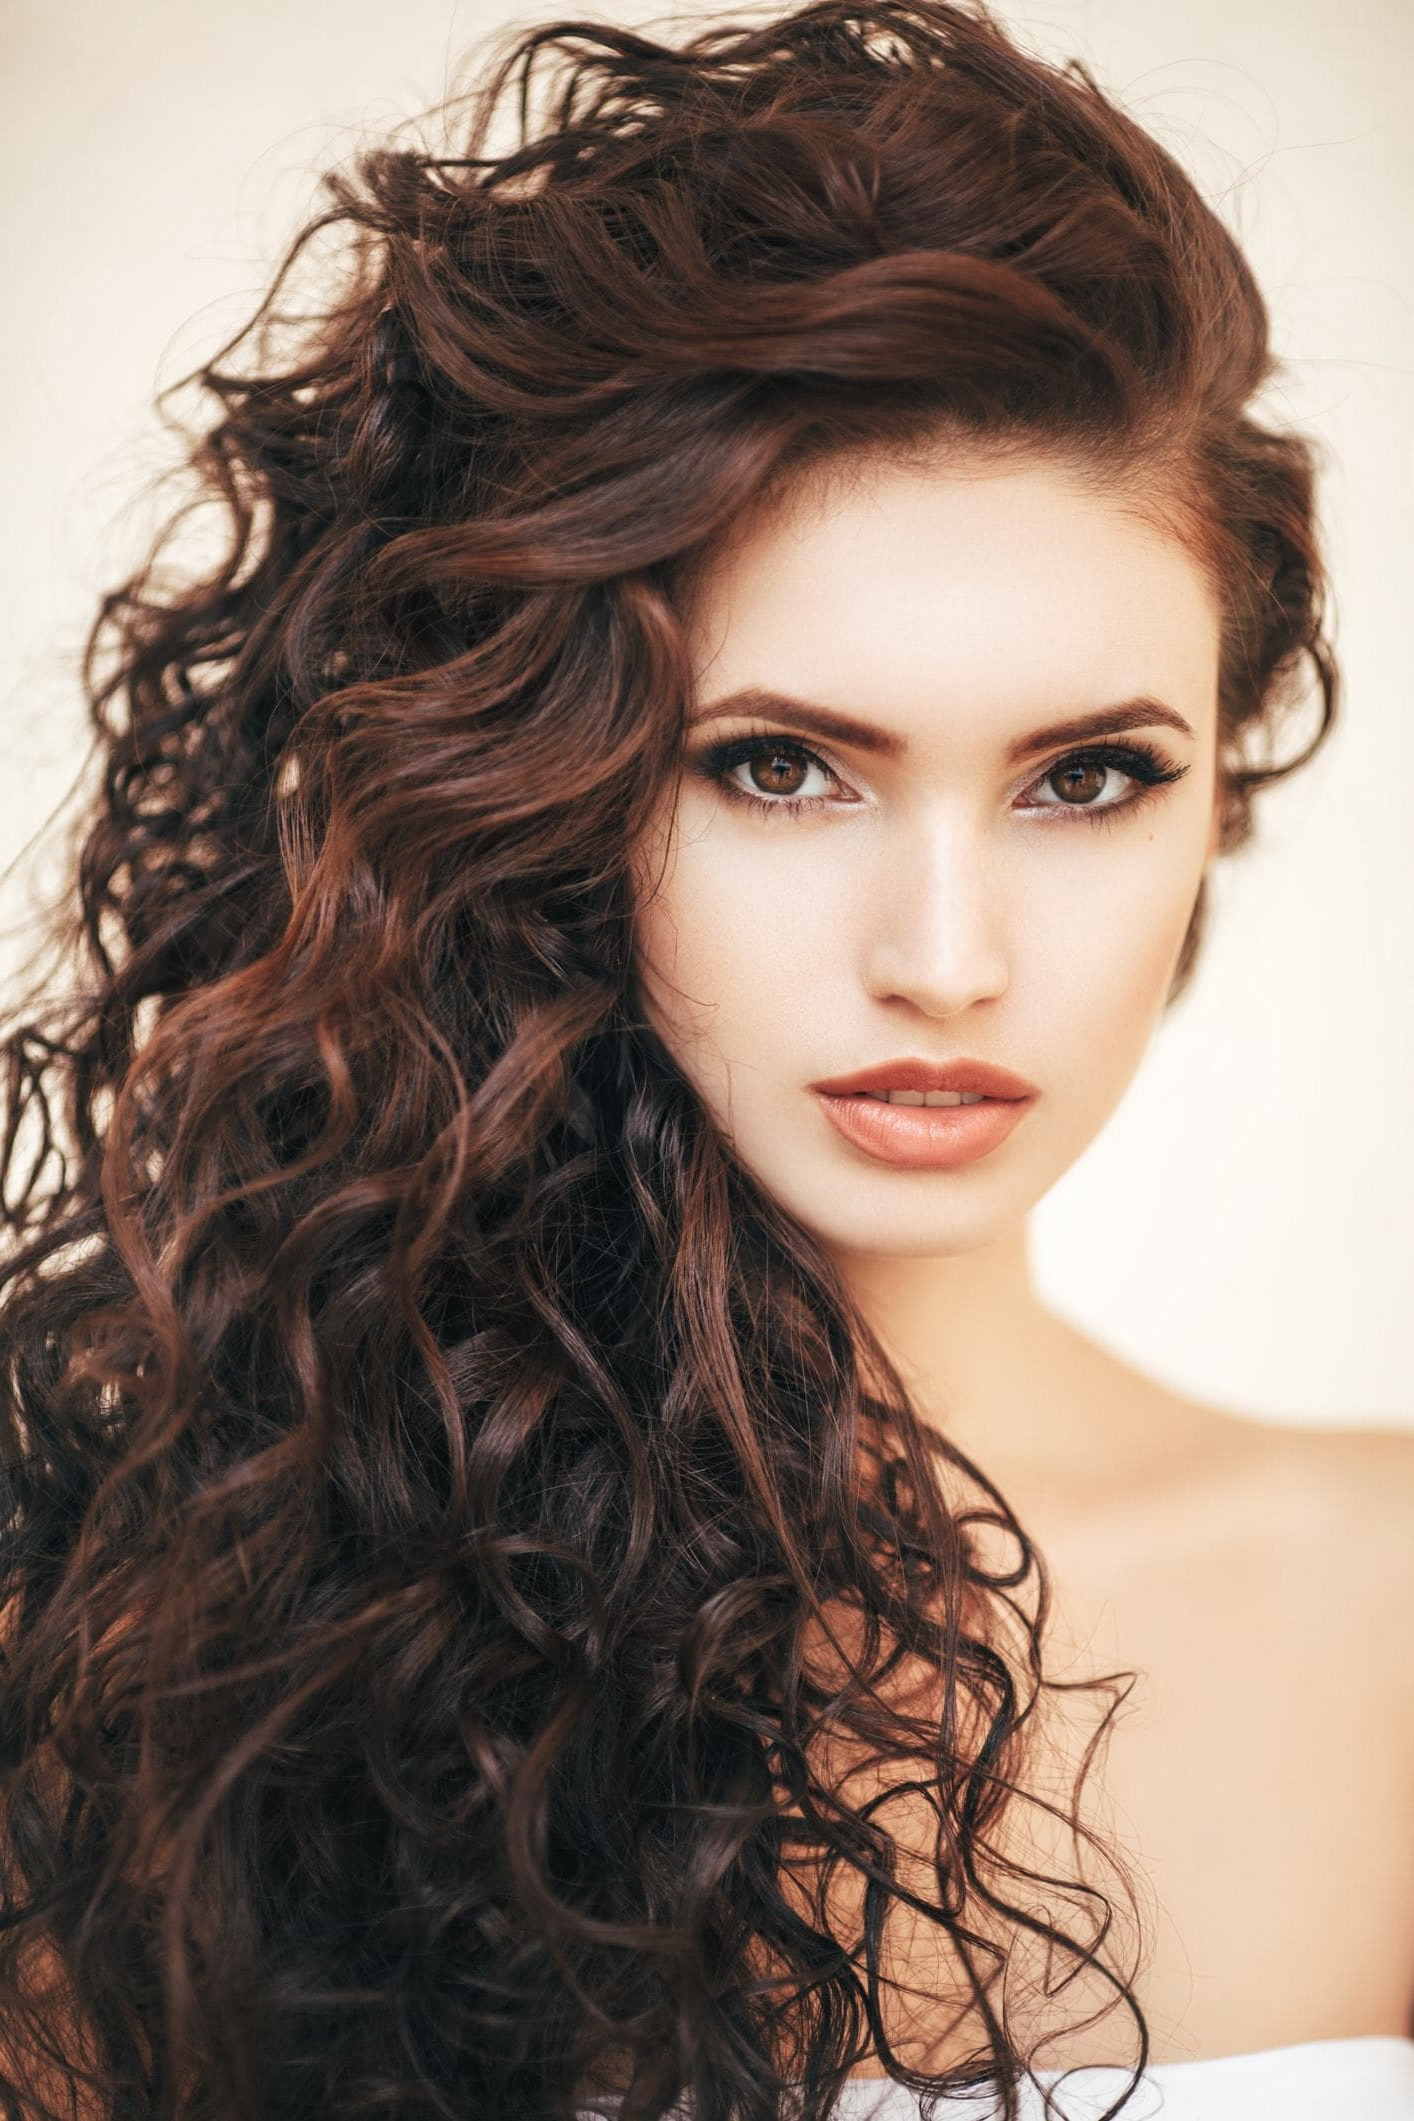 2018 Messy Loose Curls Long Hairstyles With Voluminous Bangs For Curly Hairstyles For Long Hair: 19 Kinds Of Curls To Consider (View 10 of 20)